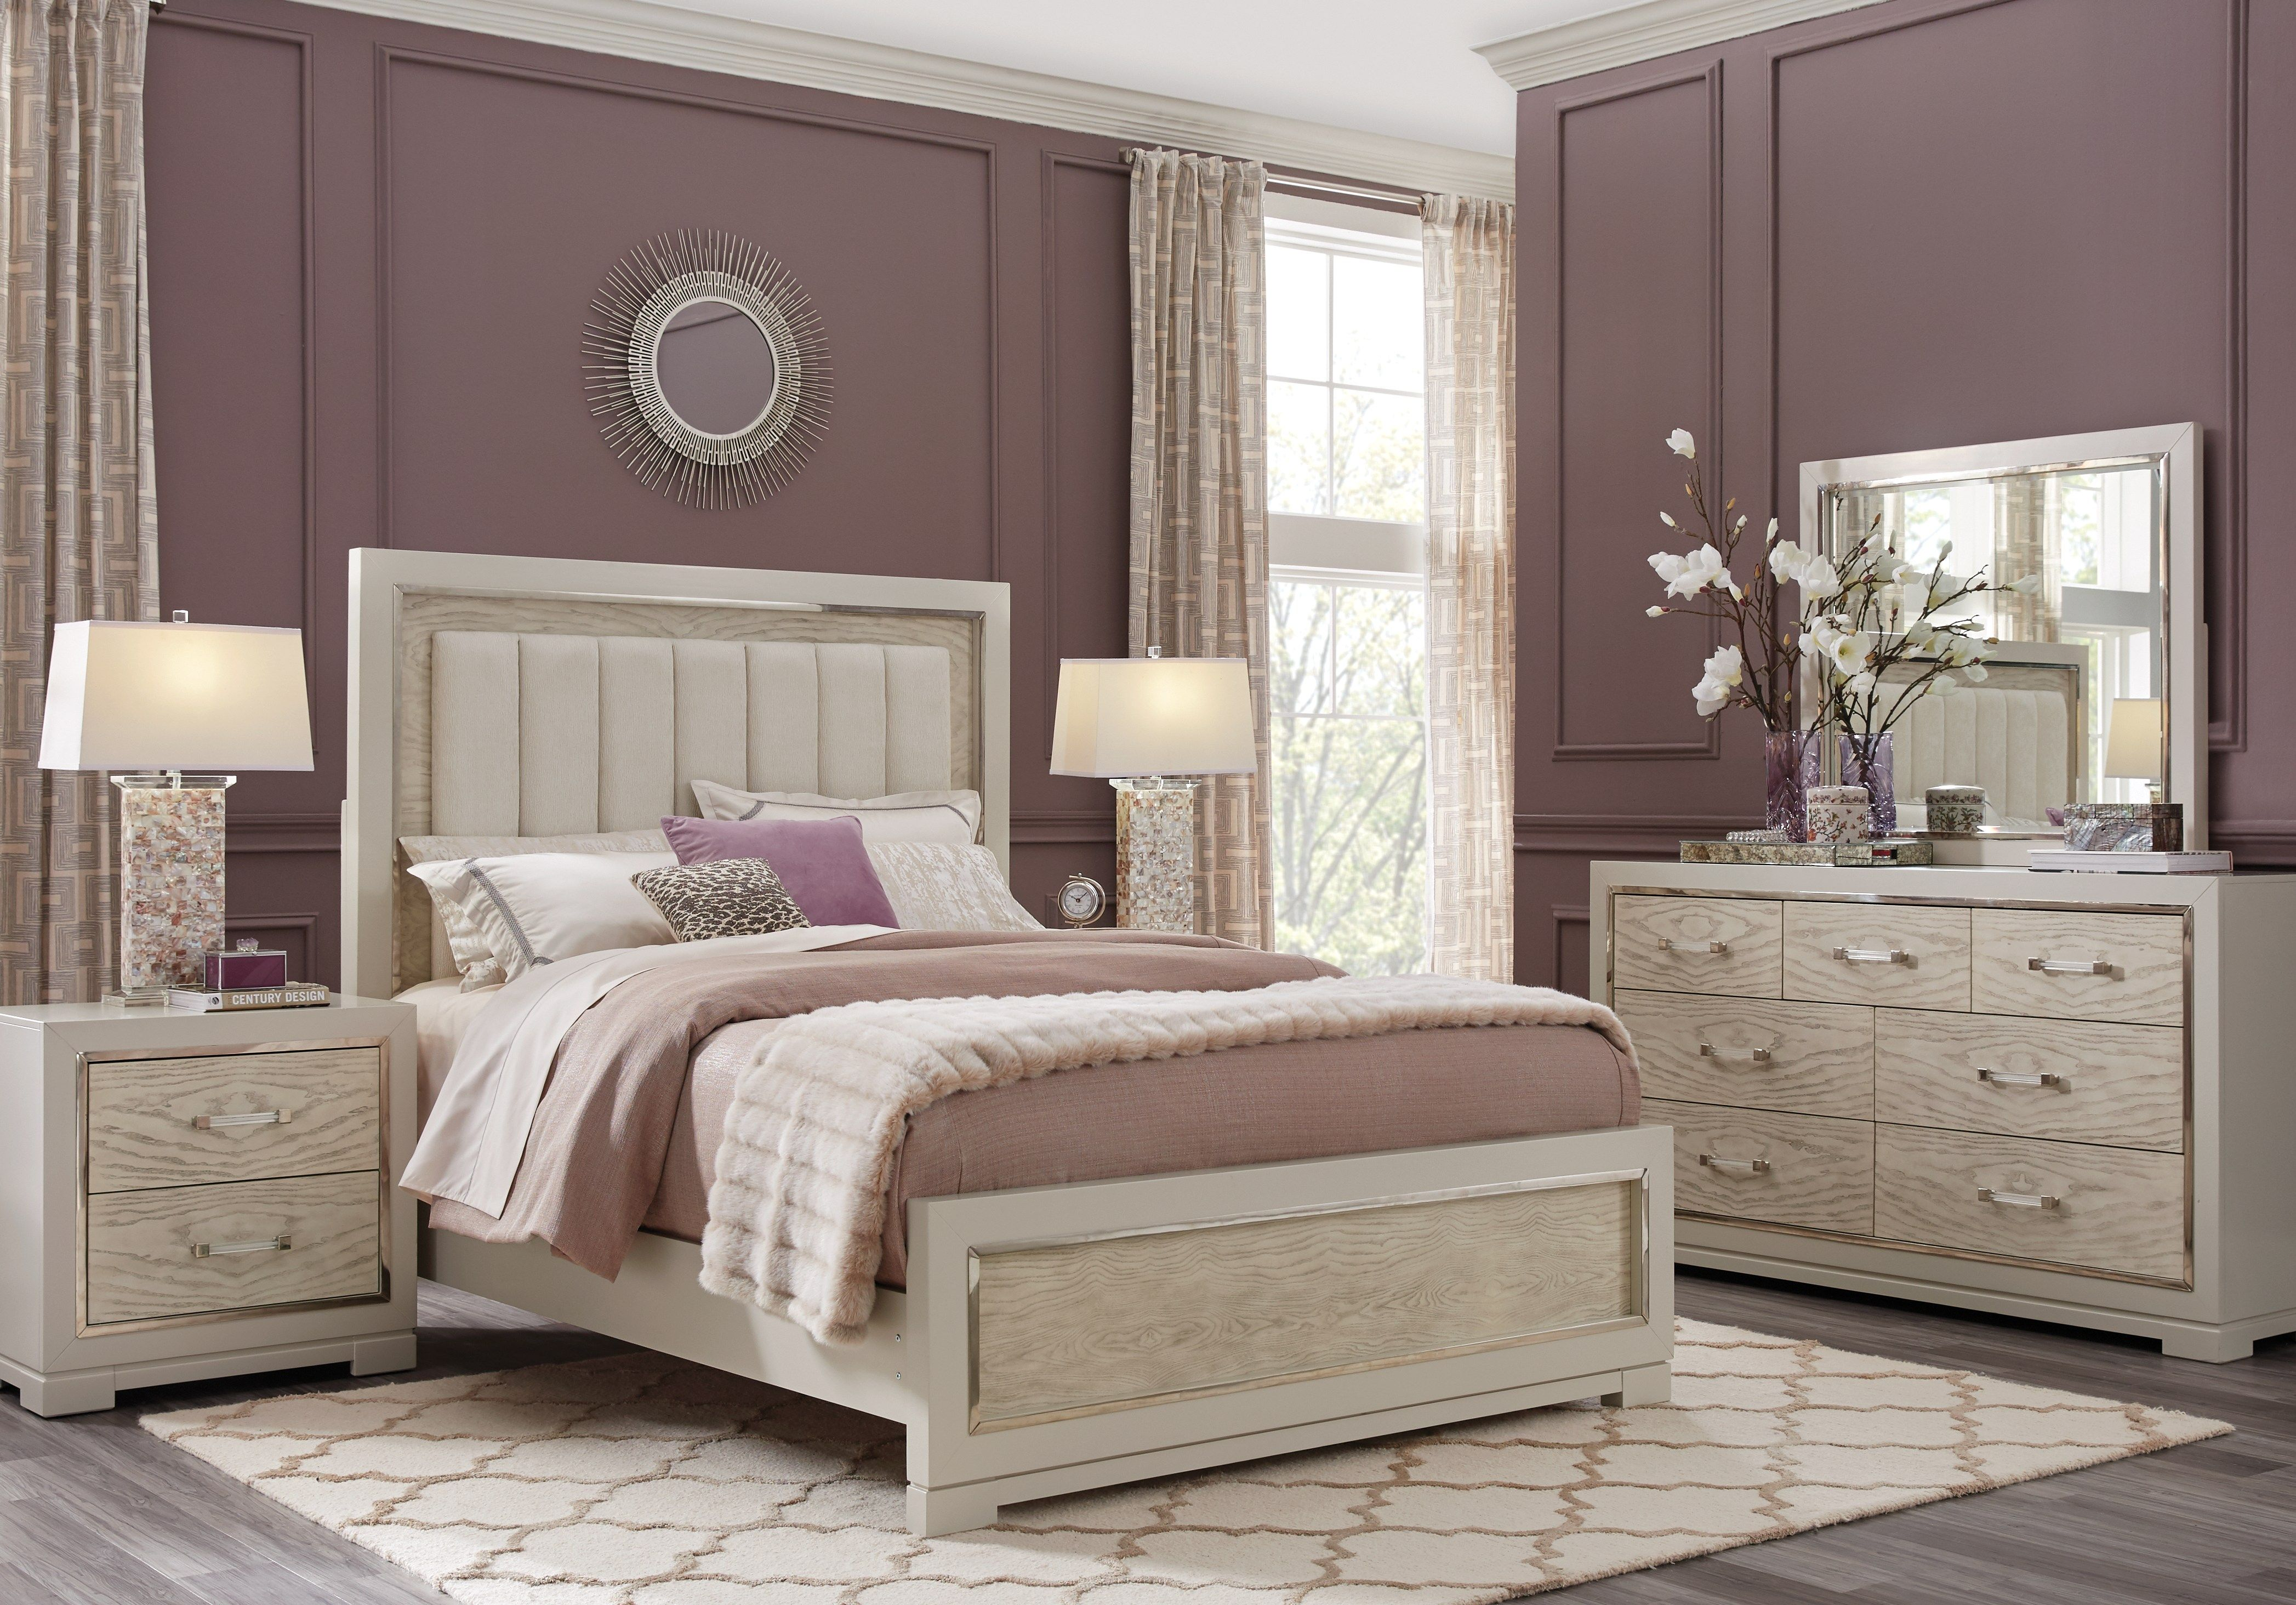 Bedroom Suites Bedroom Furniture Sets King Size Bedroom